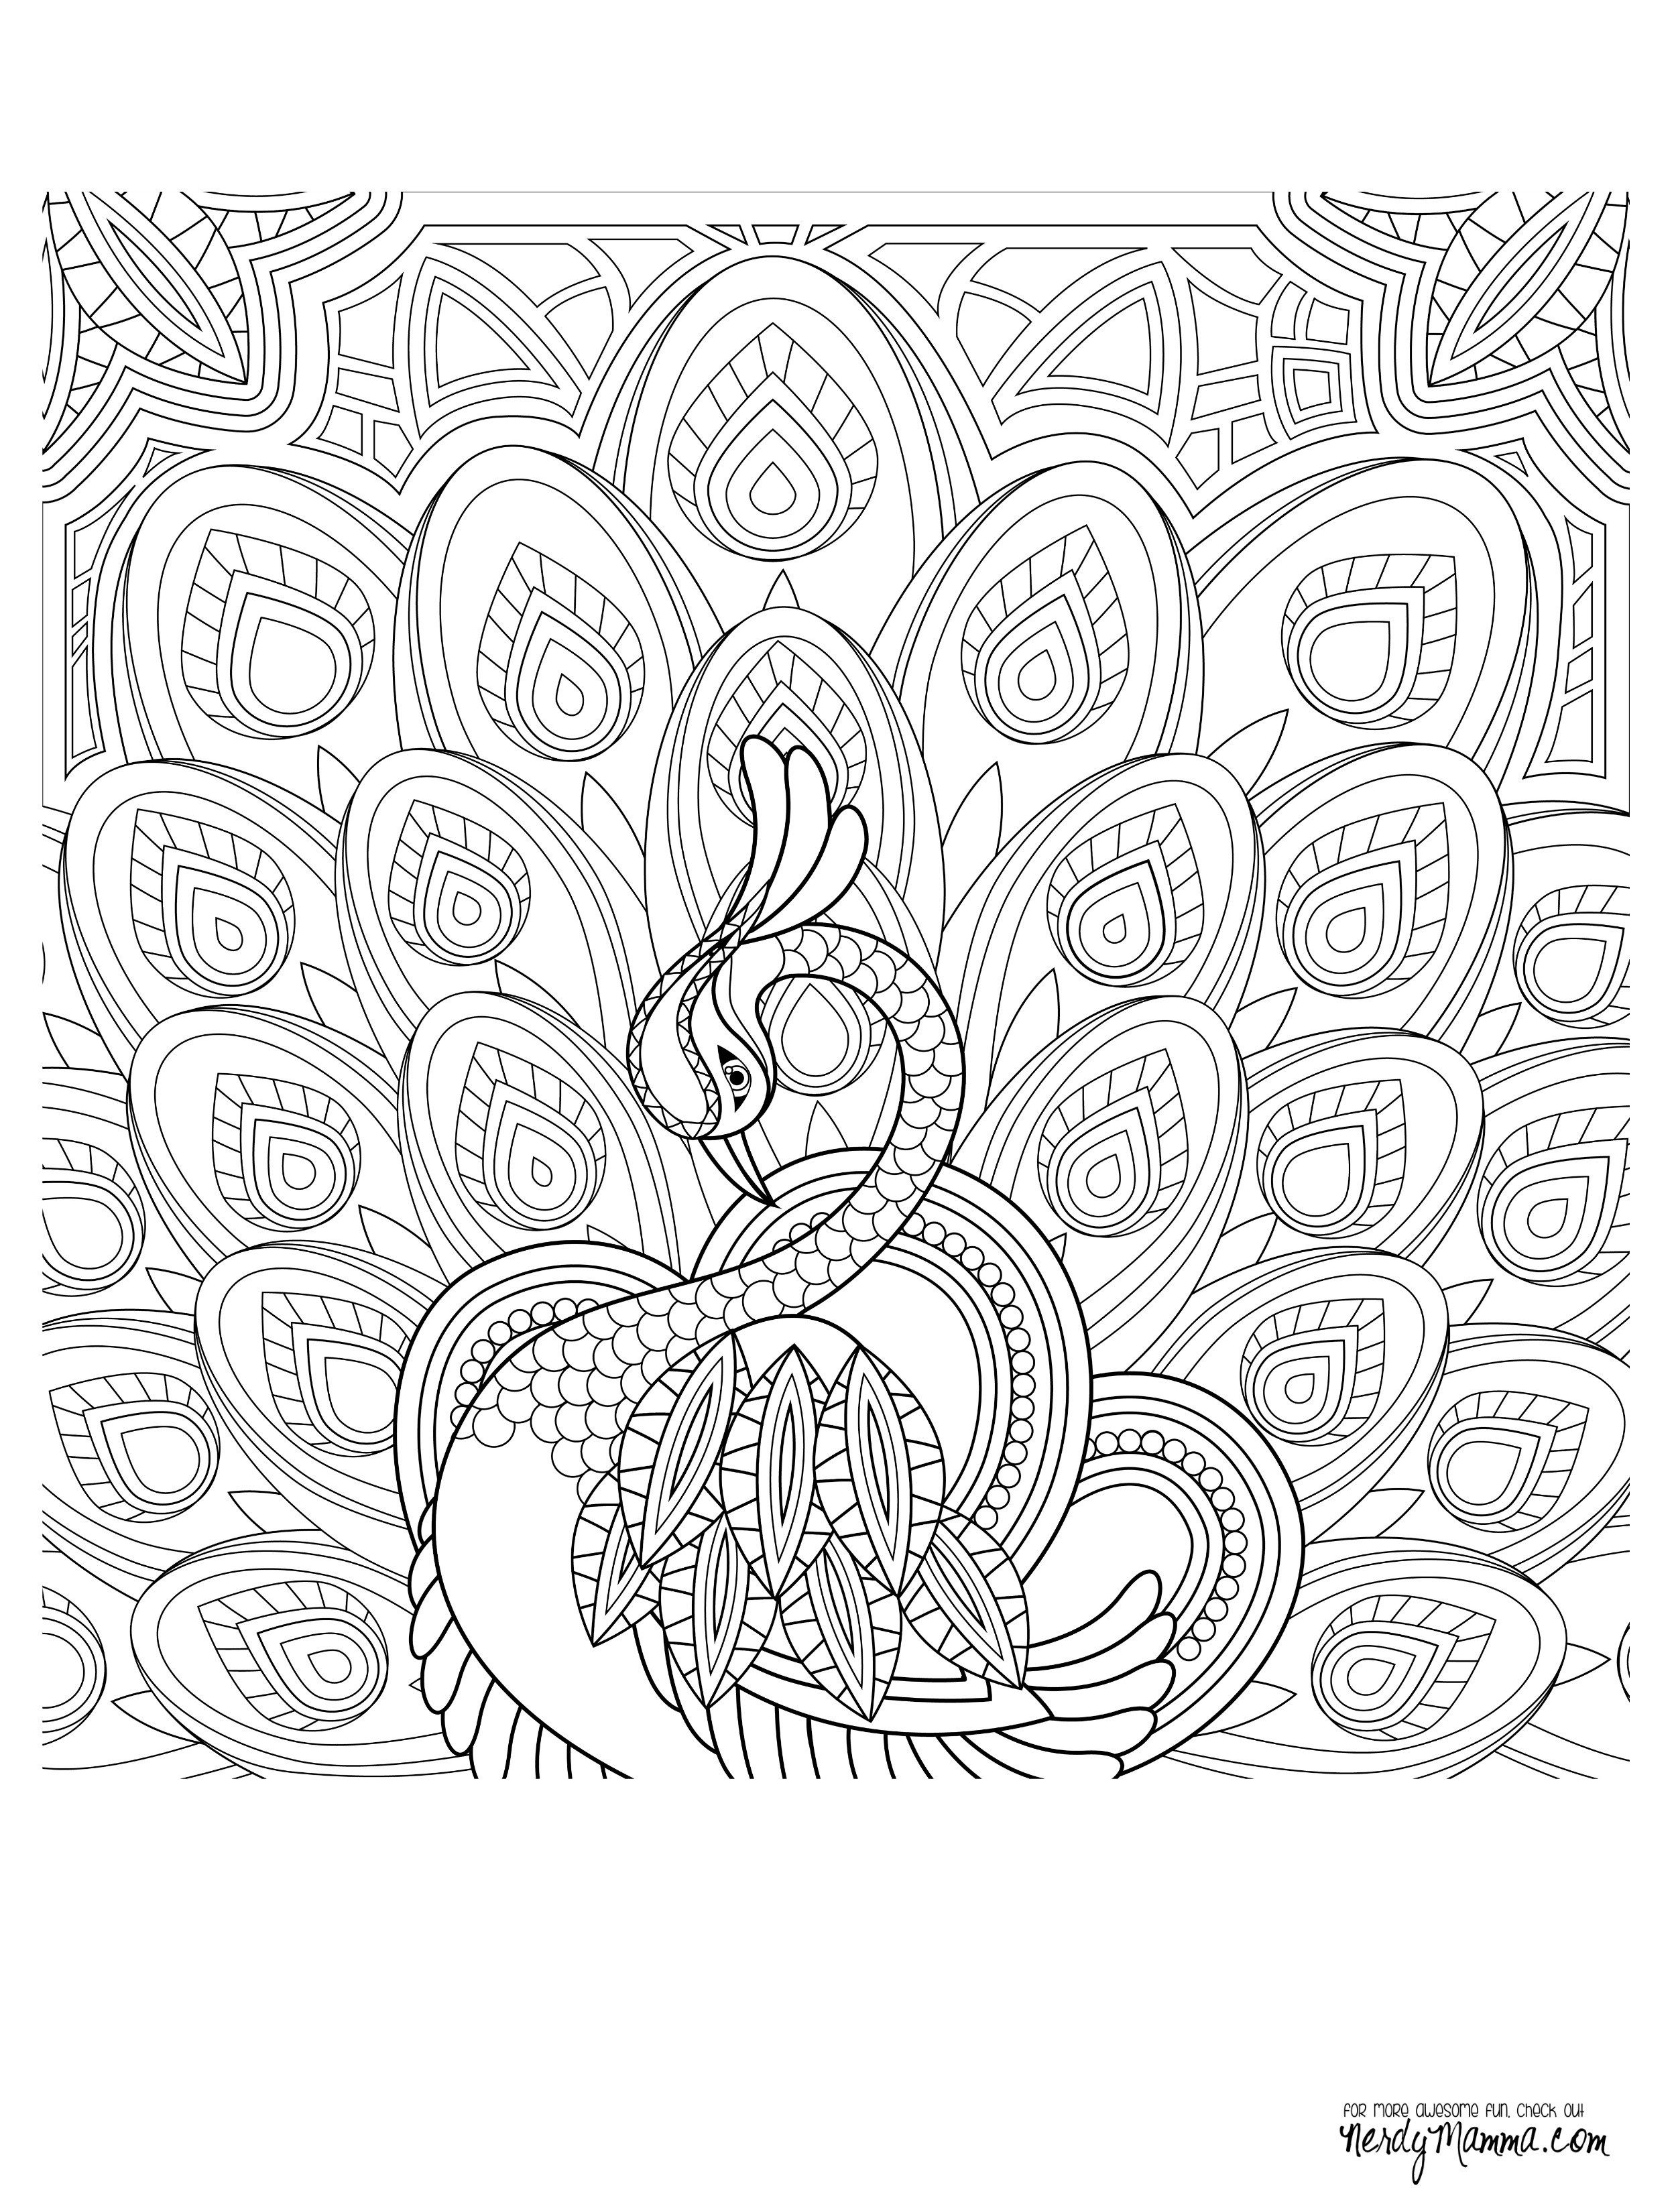 final peacock coloring page pic | Coloring Collections | Pinterest ...